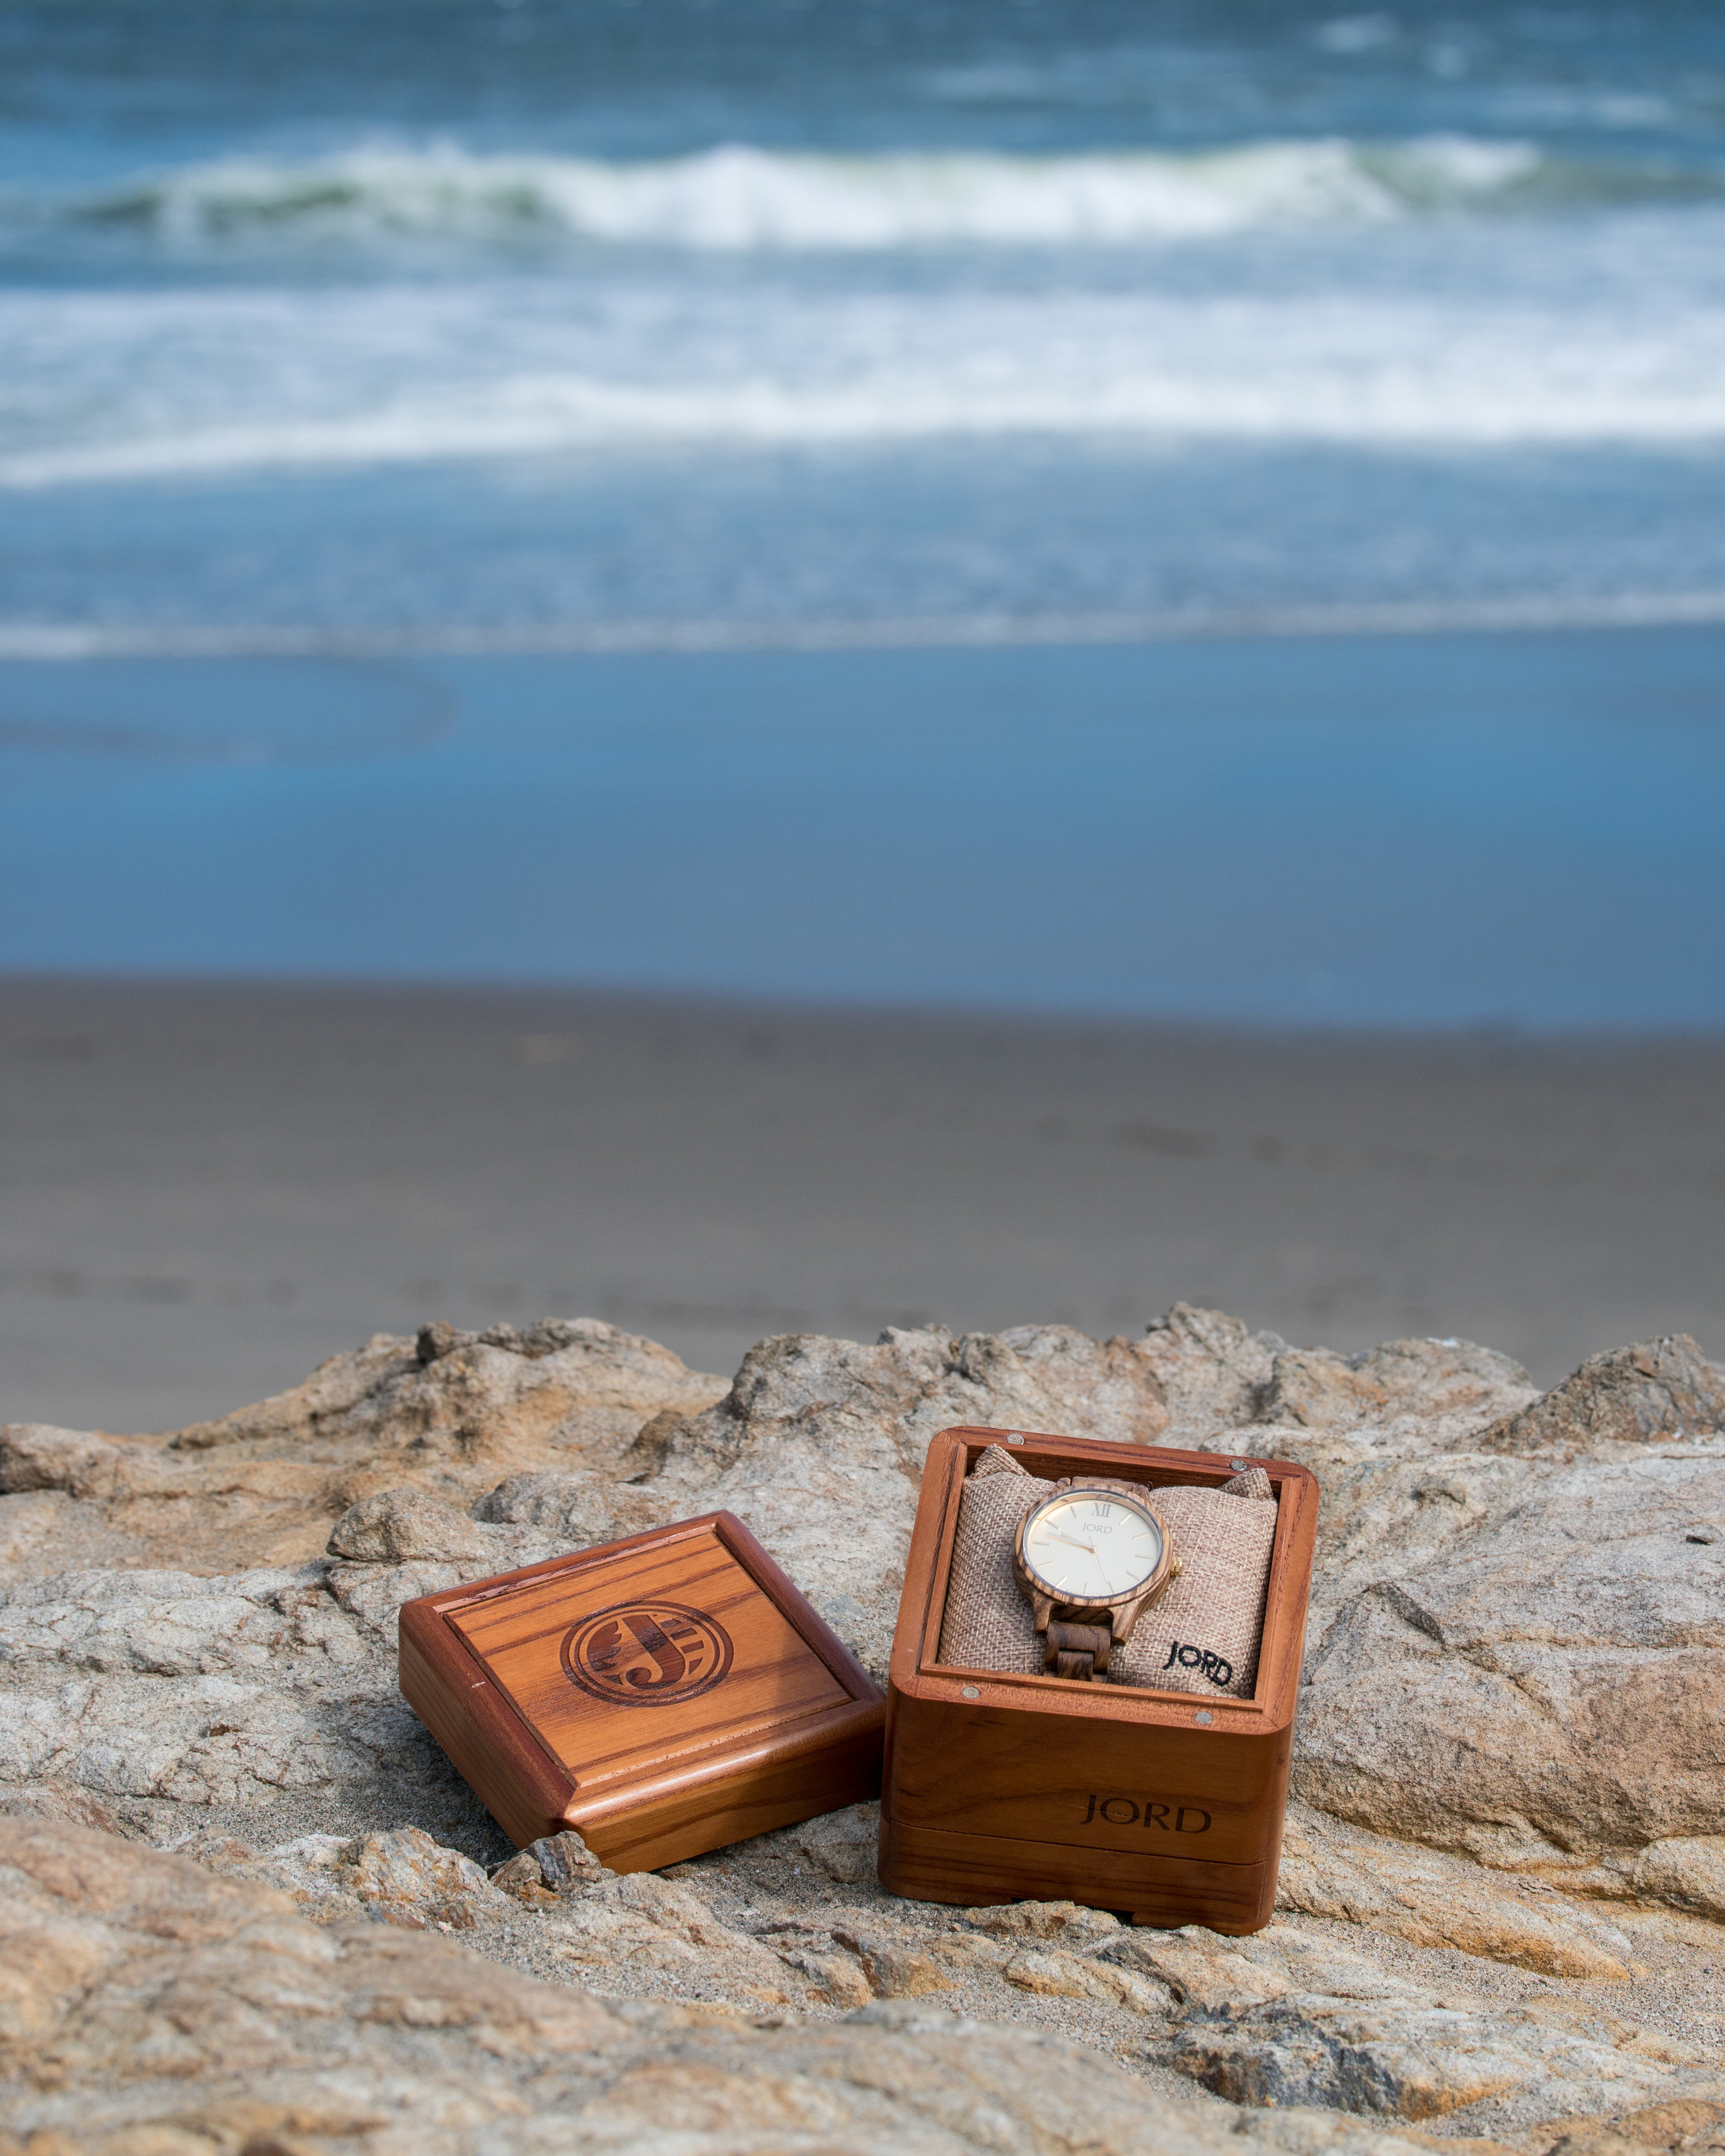 JORD watches zebrawood series san francisco